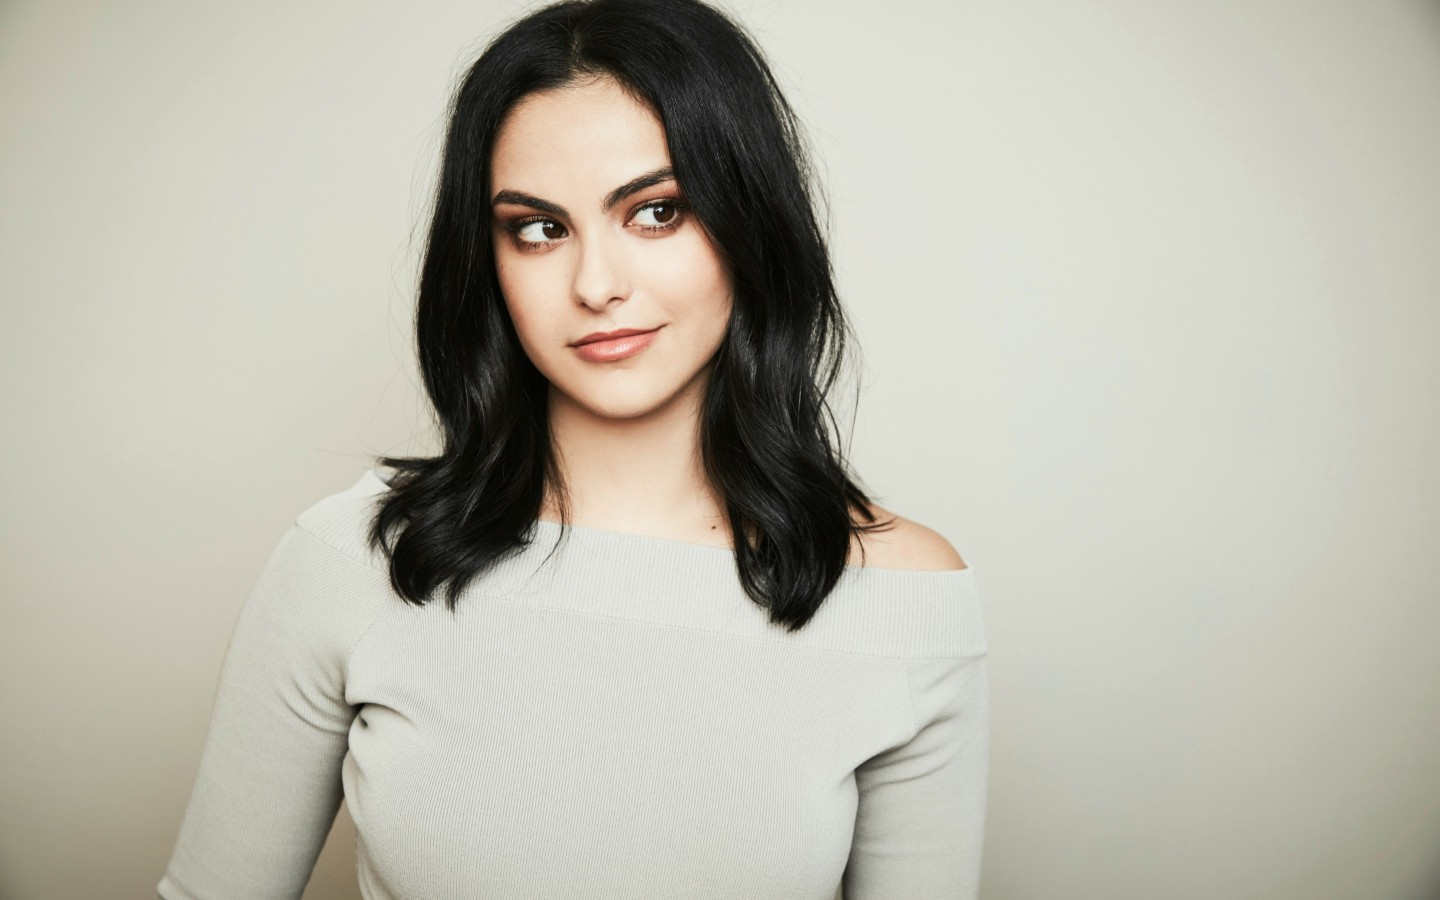 Girl Boy Love Birds Wallpaper Download Riverdale Actress Camila Mendes Wallpapers Hd Wallpapers